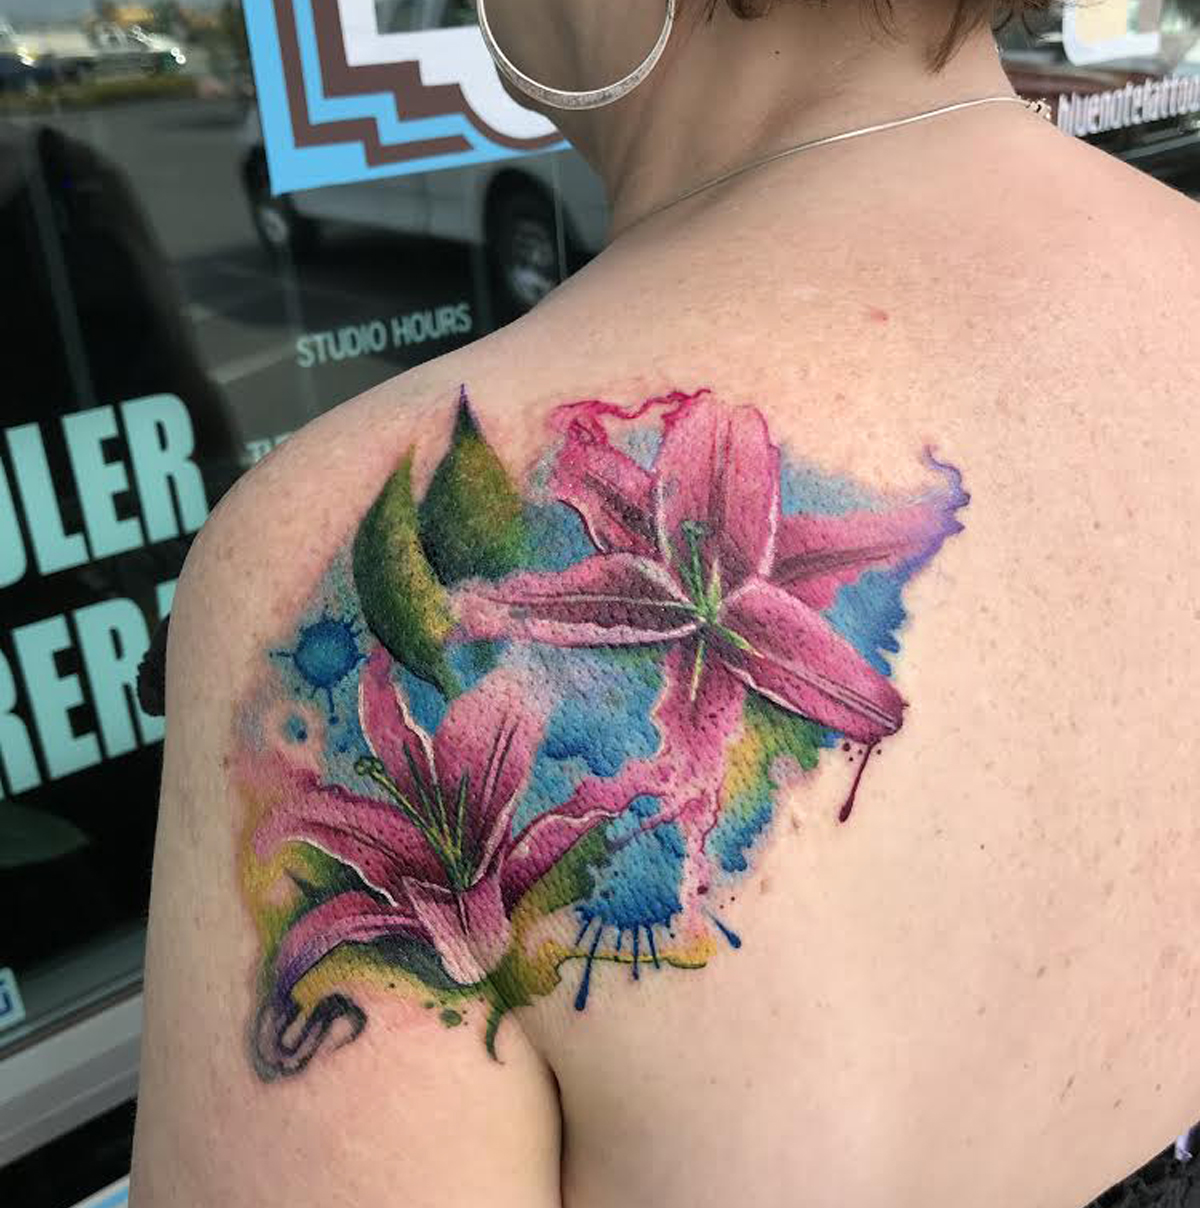 Watercolor Style Tattoo by Krystof